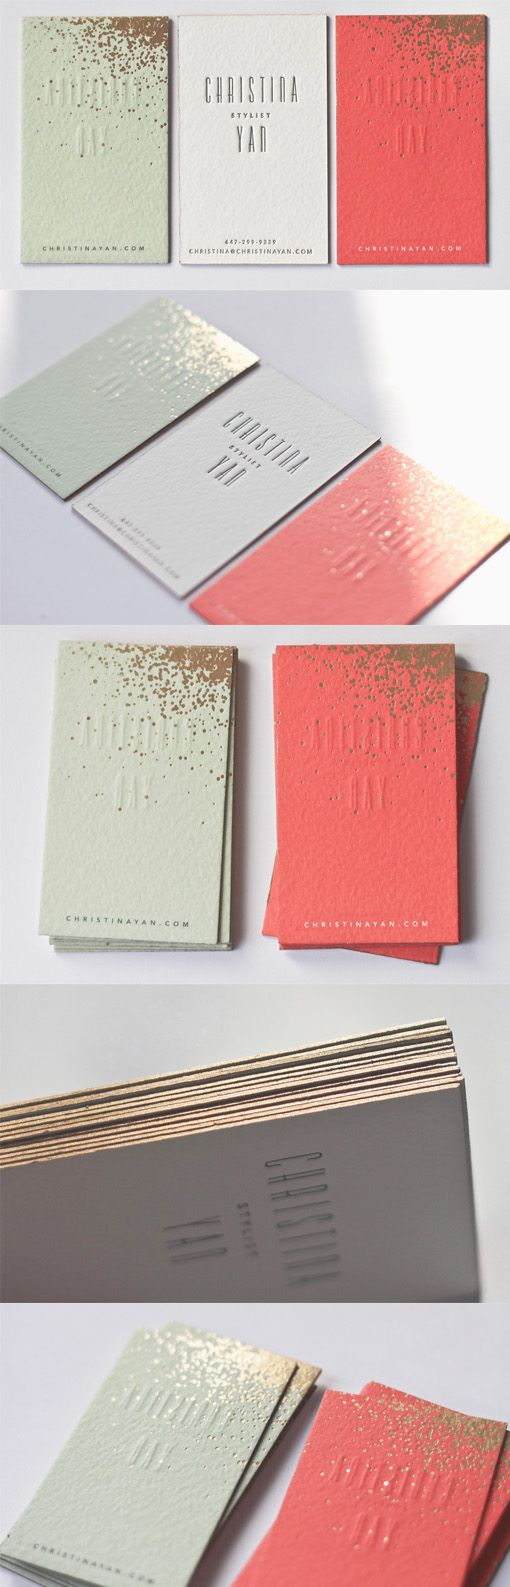 Simple, modern, minimalist letterpress business card with gold. Design inspiration.